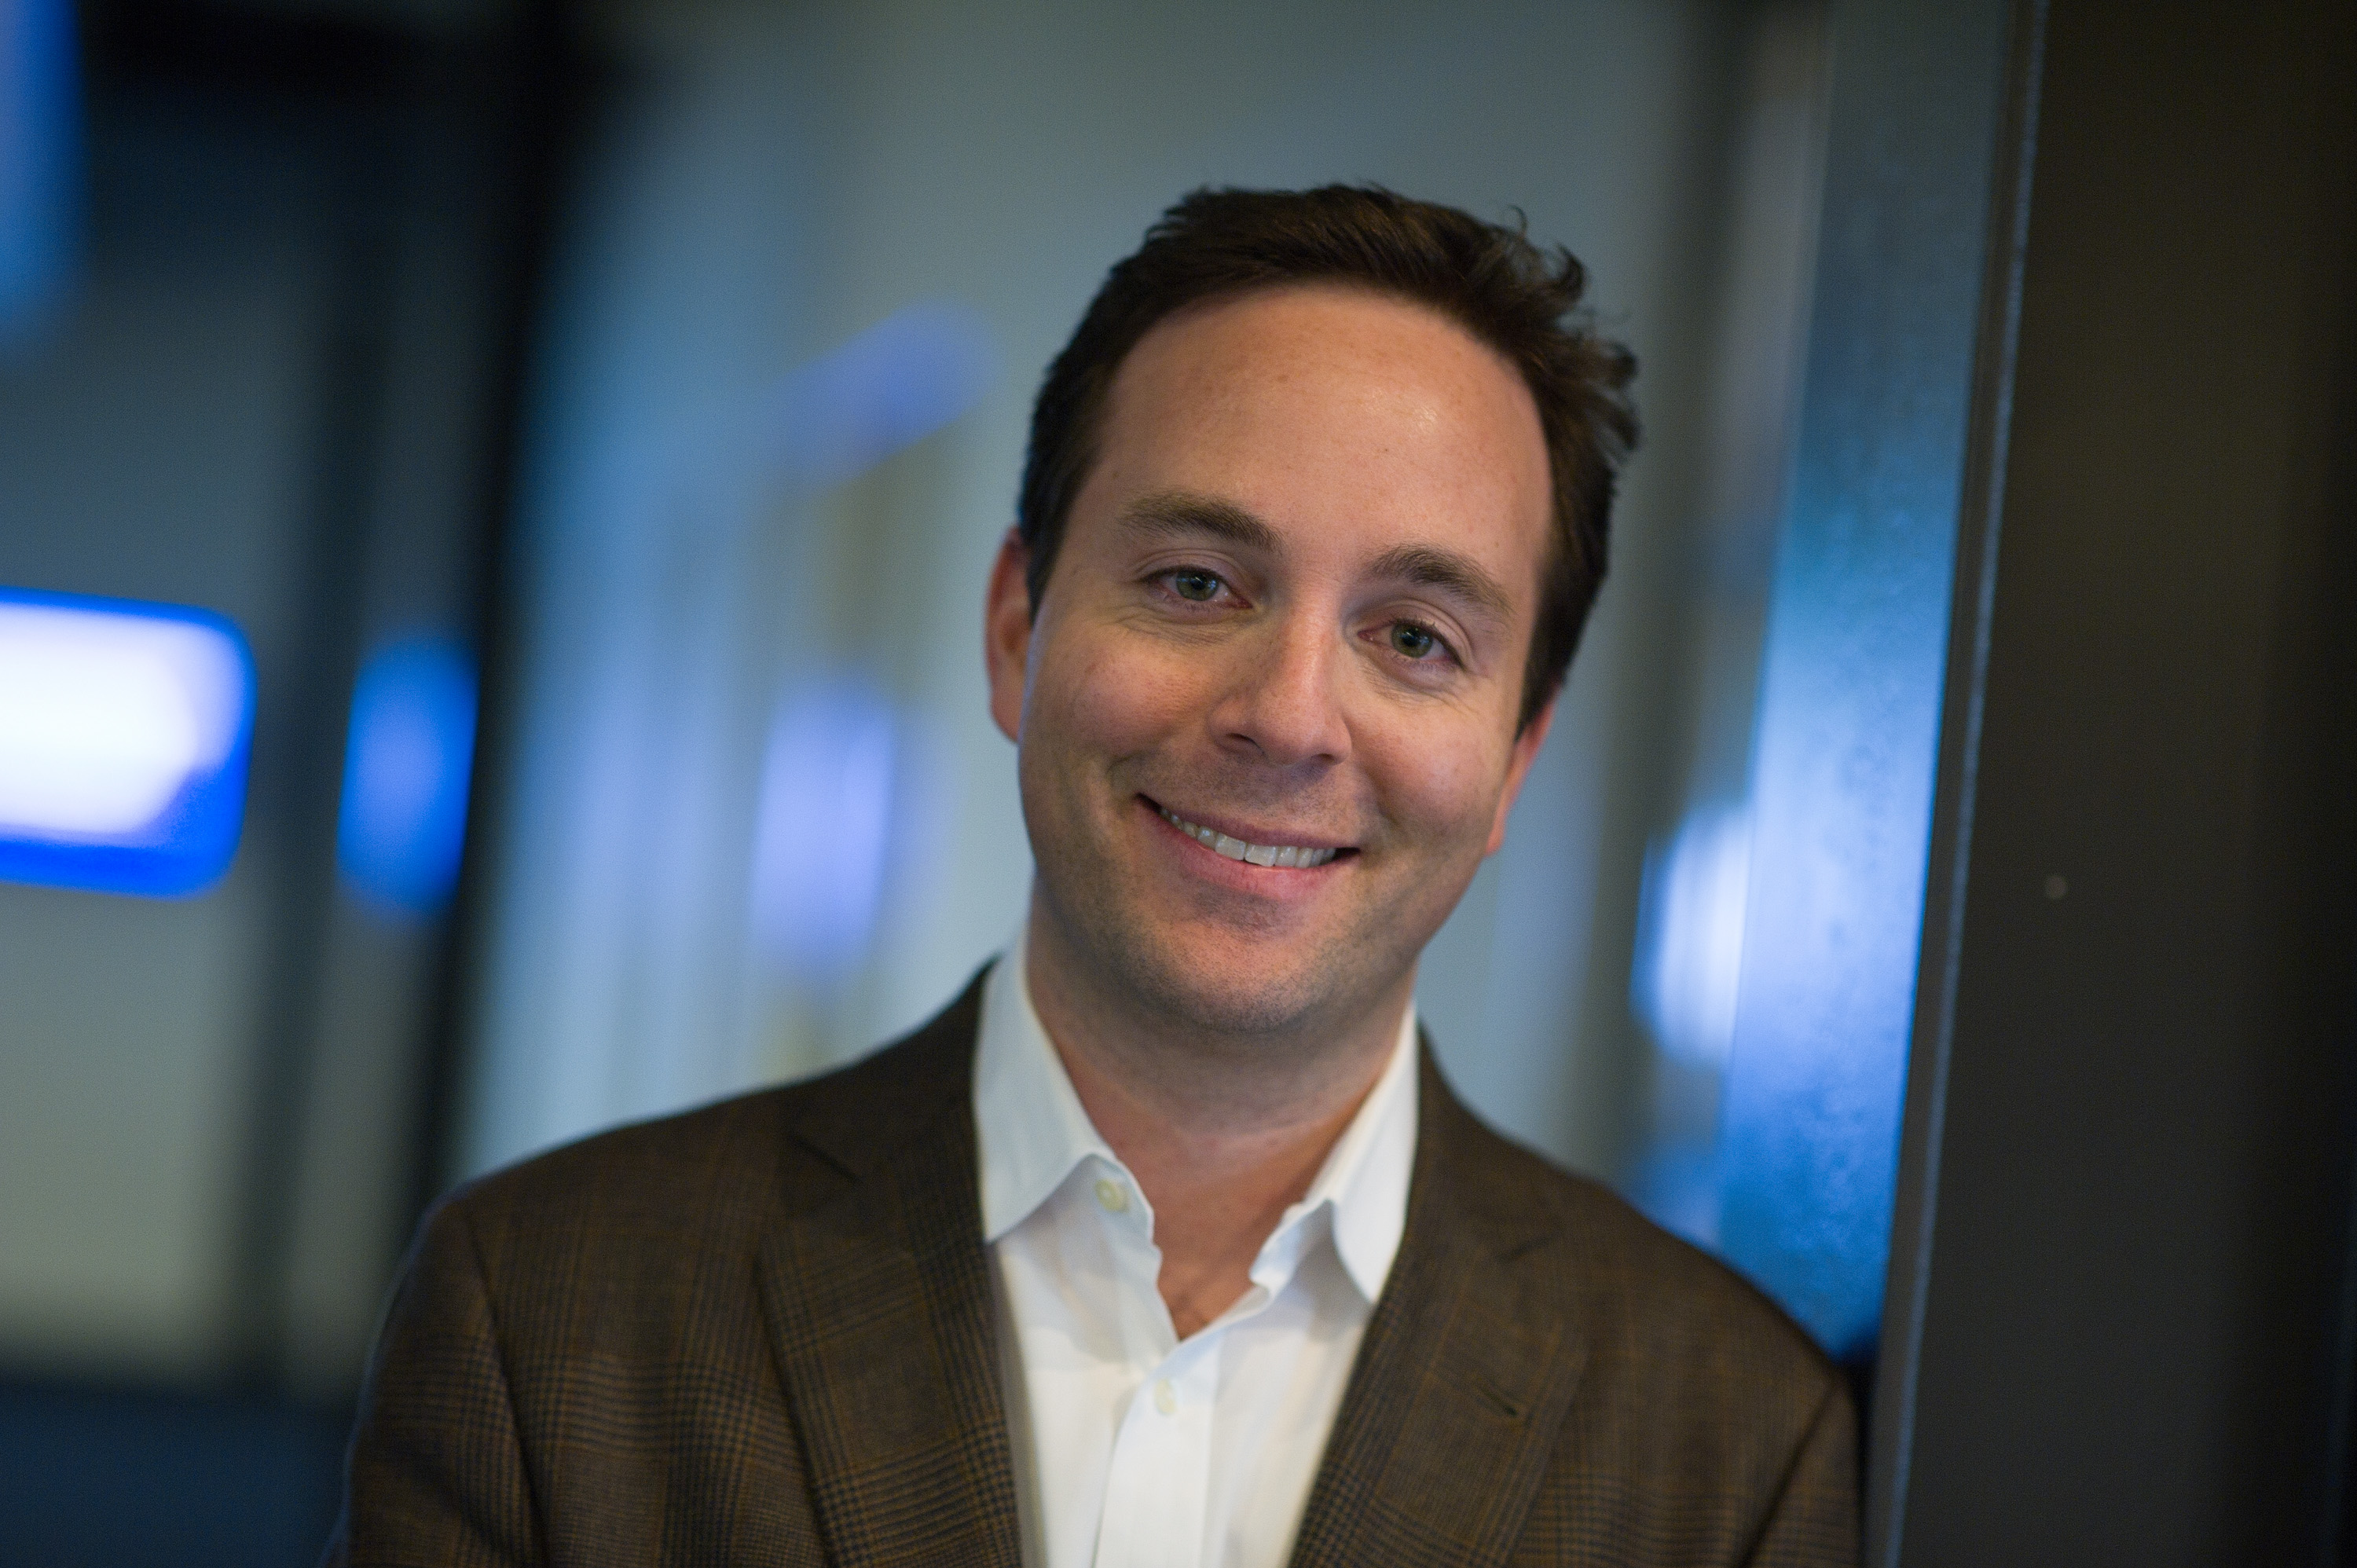 Zillow CEO Spencer Marc Rascoff